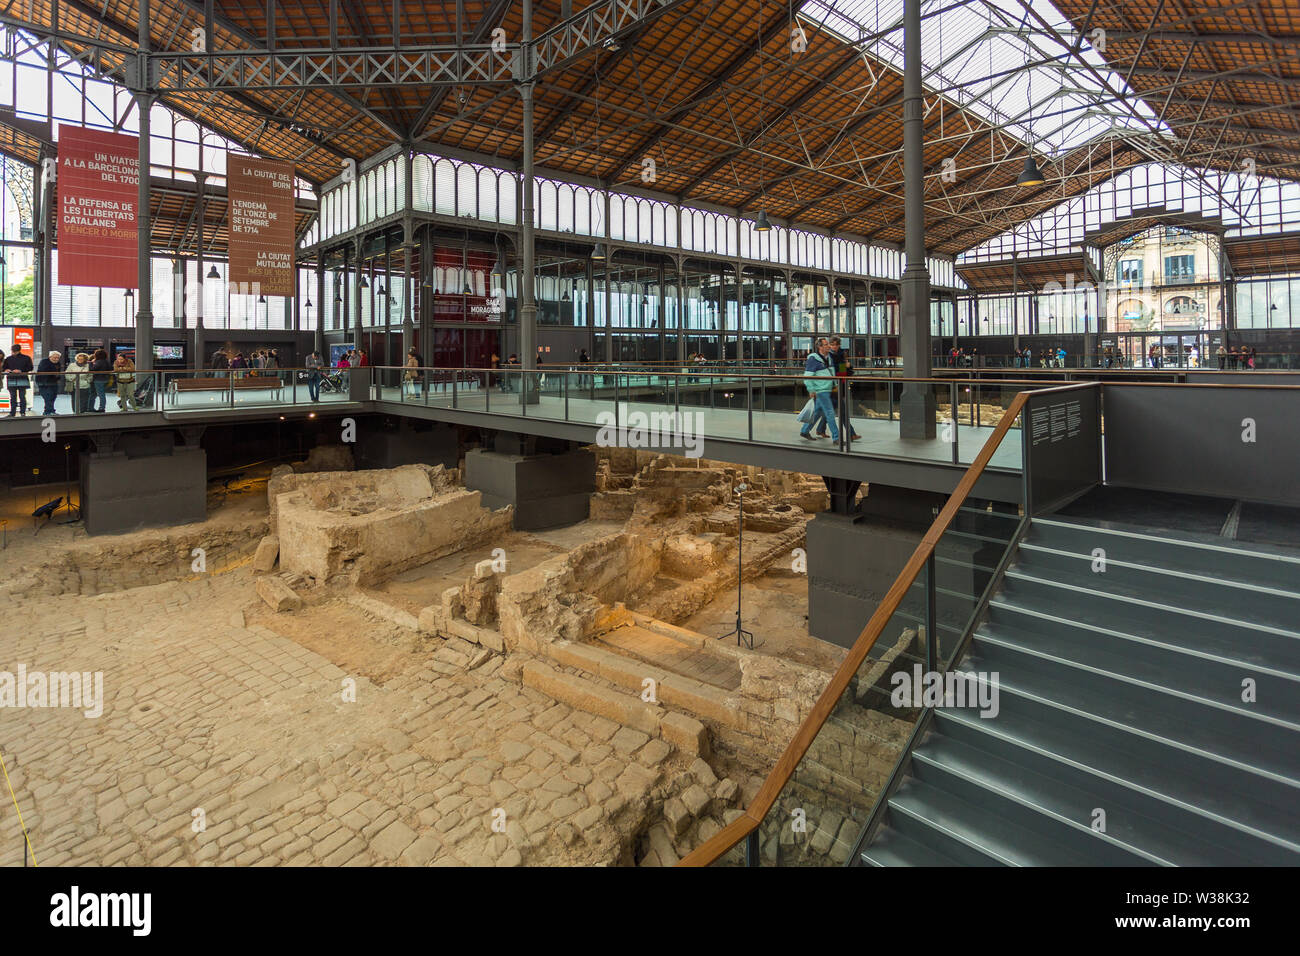 Barcelona, Spain- 09 November 2014: Ruins of the medieval city, part of the la Ribera district in the area El Born Cultural Center. - Stock Image